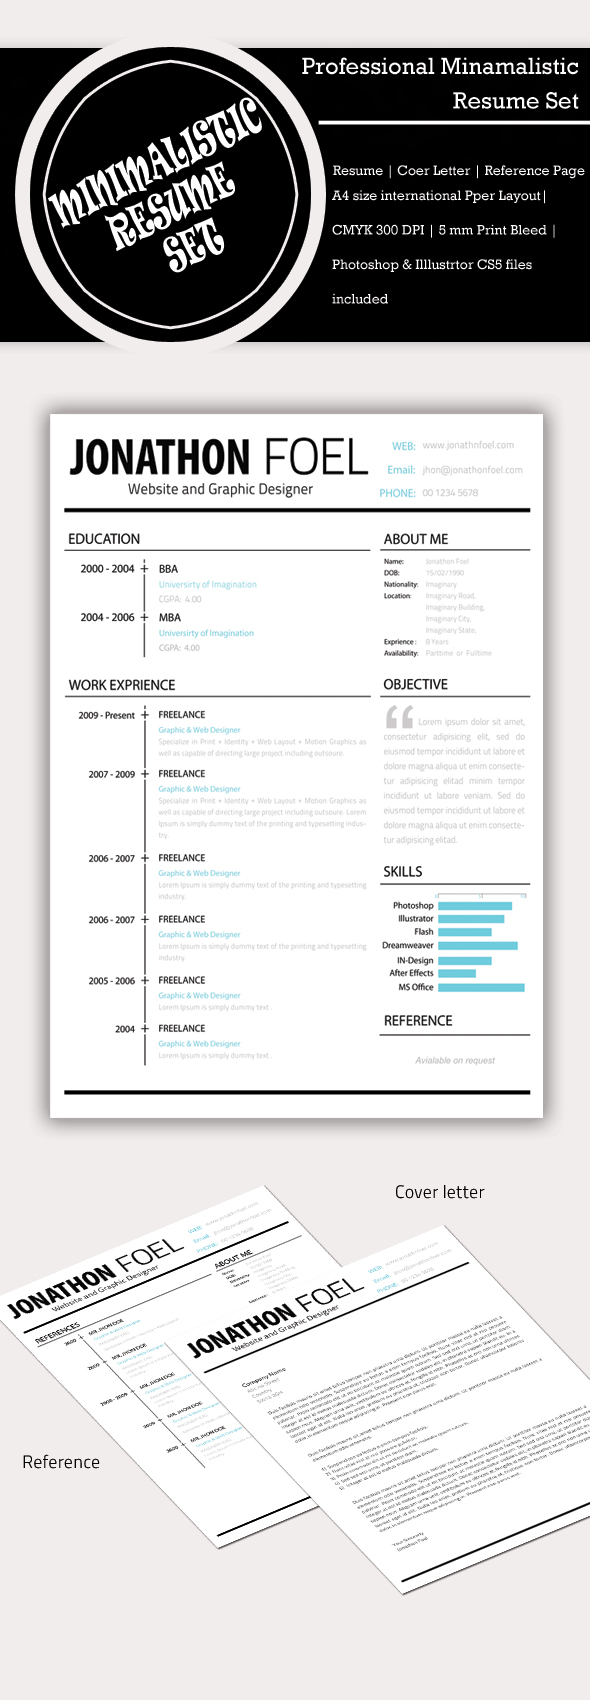 Minimalistic Resume template PSD by Simanto-90